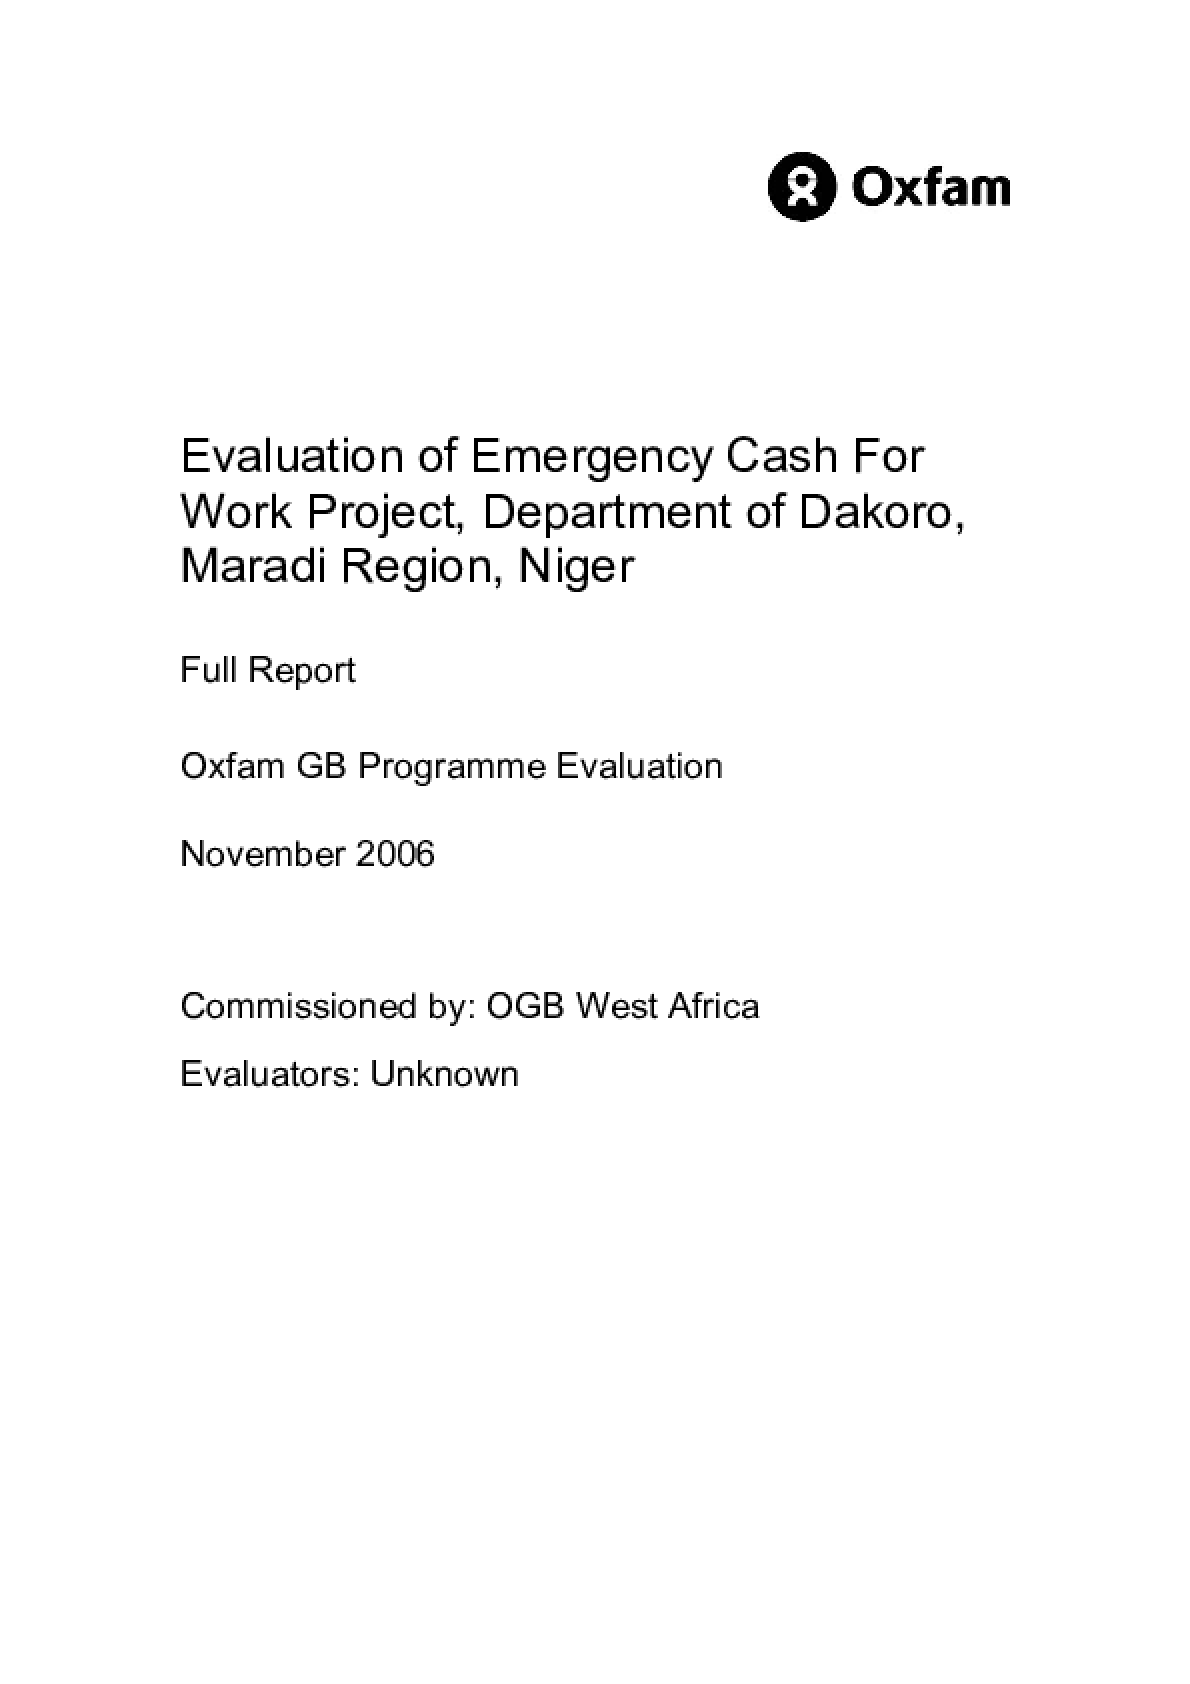 Evaluation of Emergency Cash For Work Project, Department of Dakoro, Maradi Region, Niger